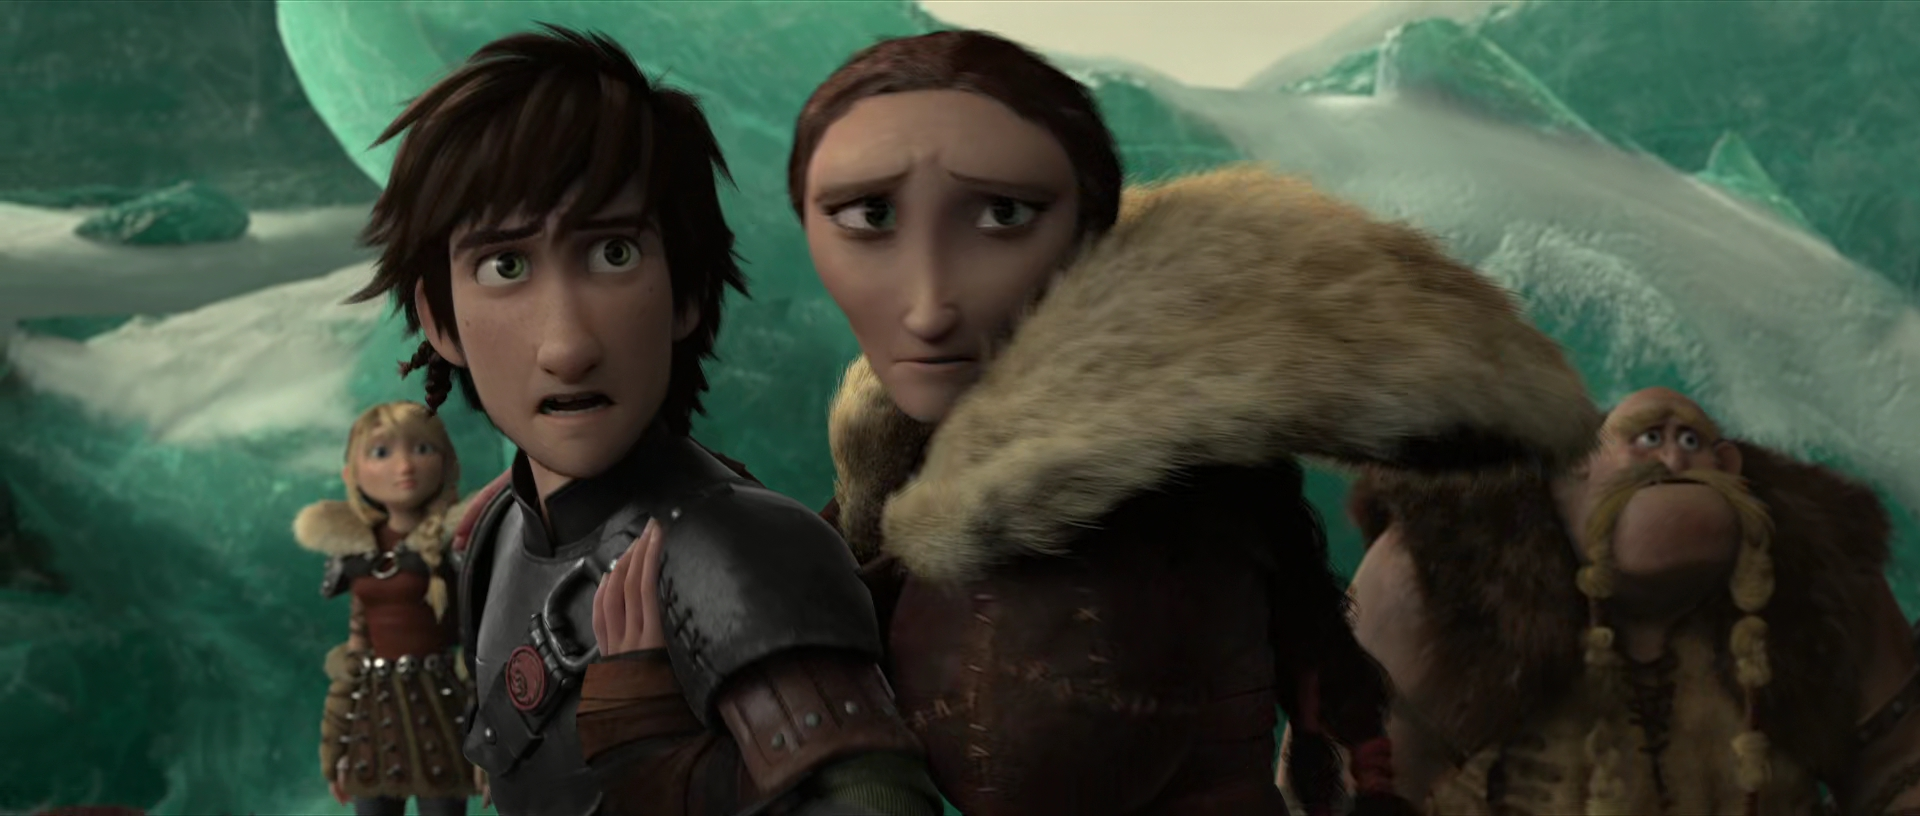 hiccup and toothless relationship